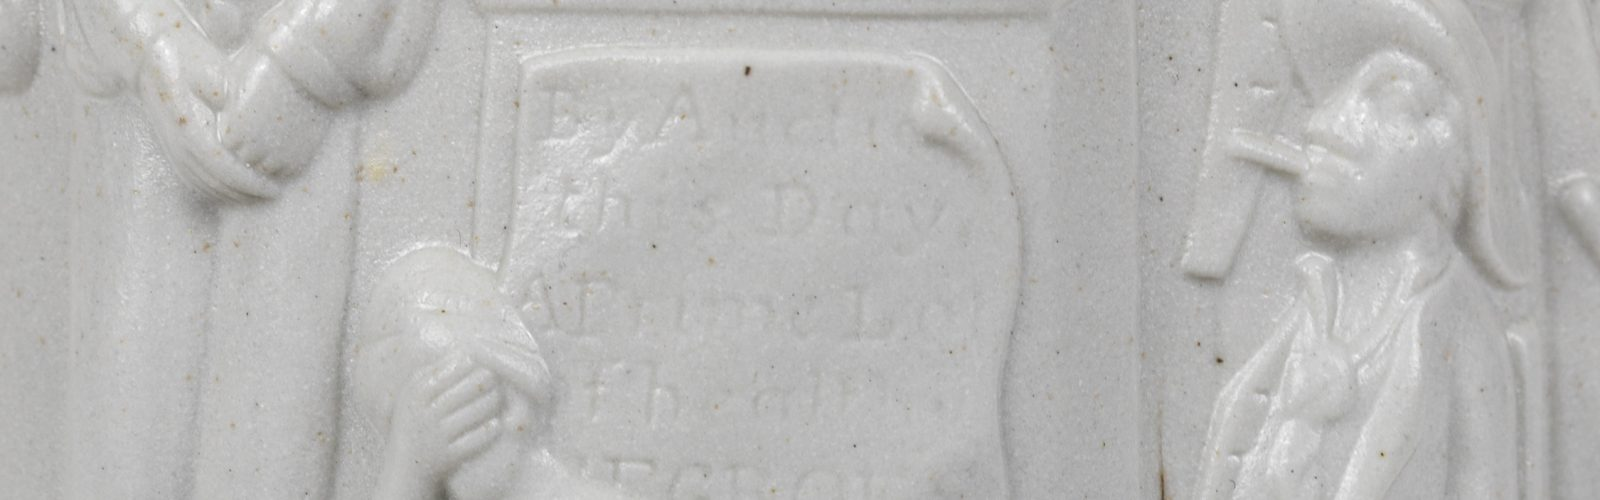 Detal of Slavery jug; part of man on left and right. Panel with illegible letters